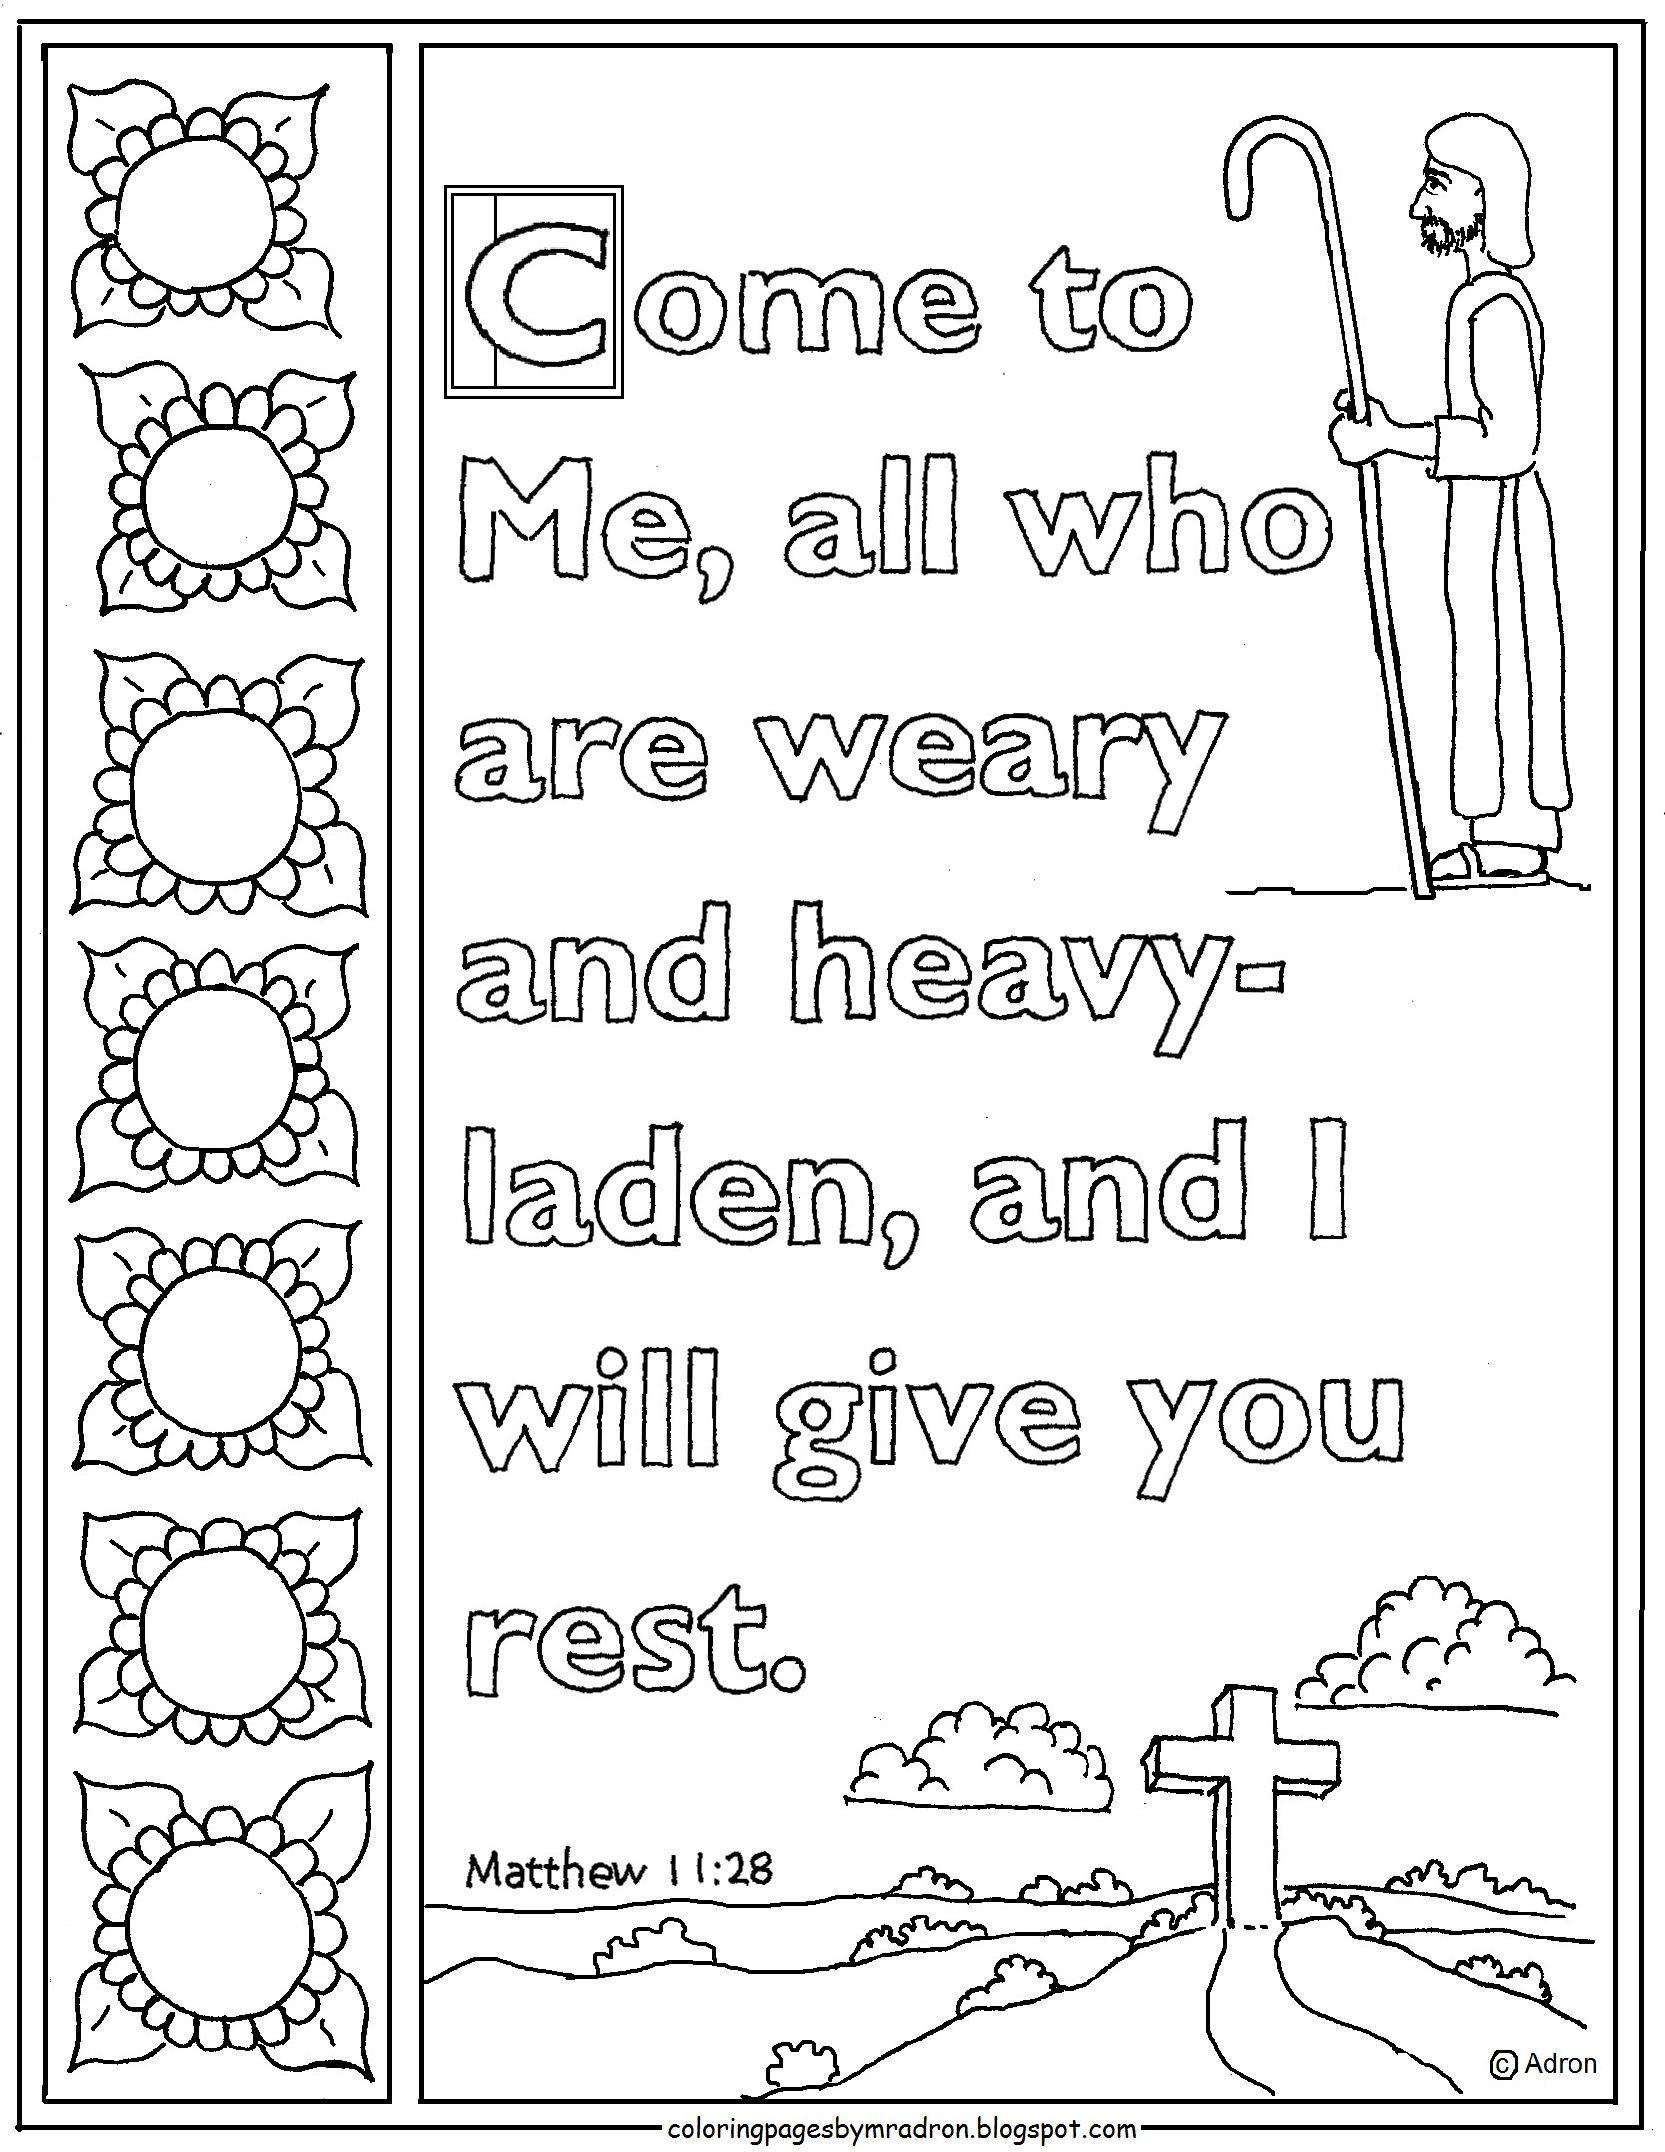 Matthew 11:28 Print and Color Page. I have Hundreds More At My Blog ...